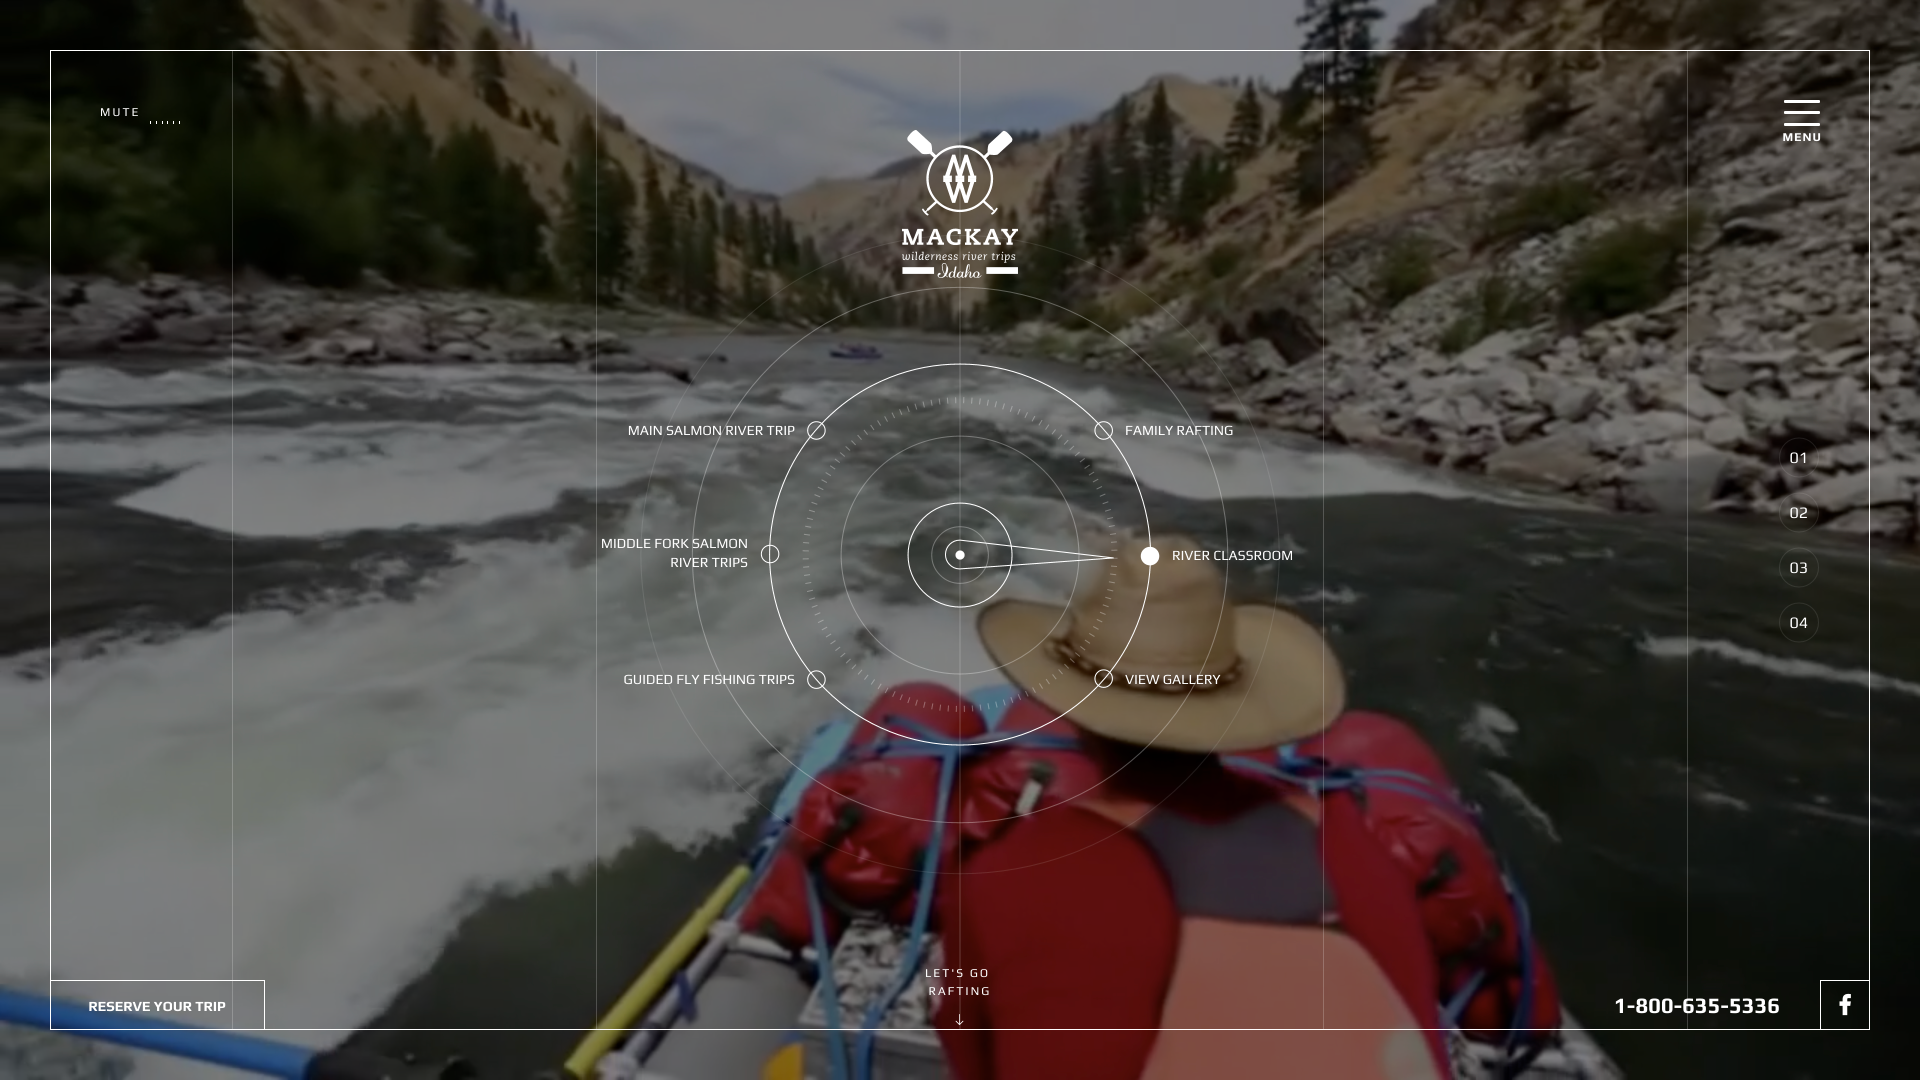 Mackay River Website Design Preview